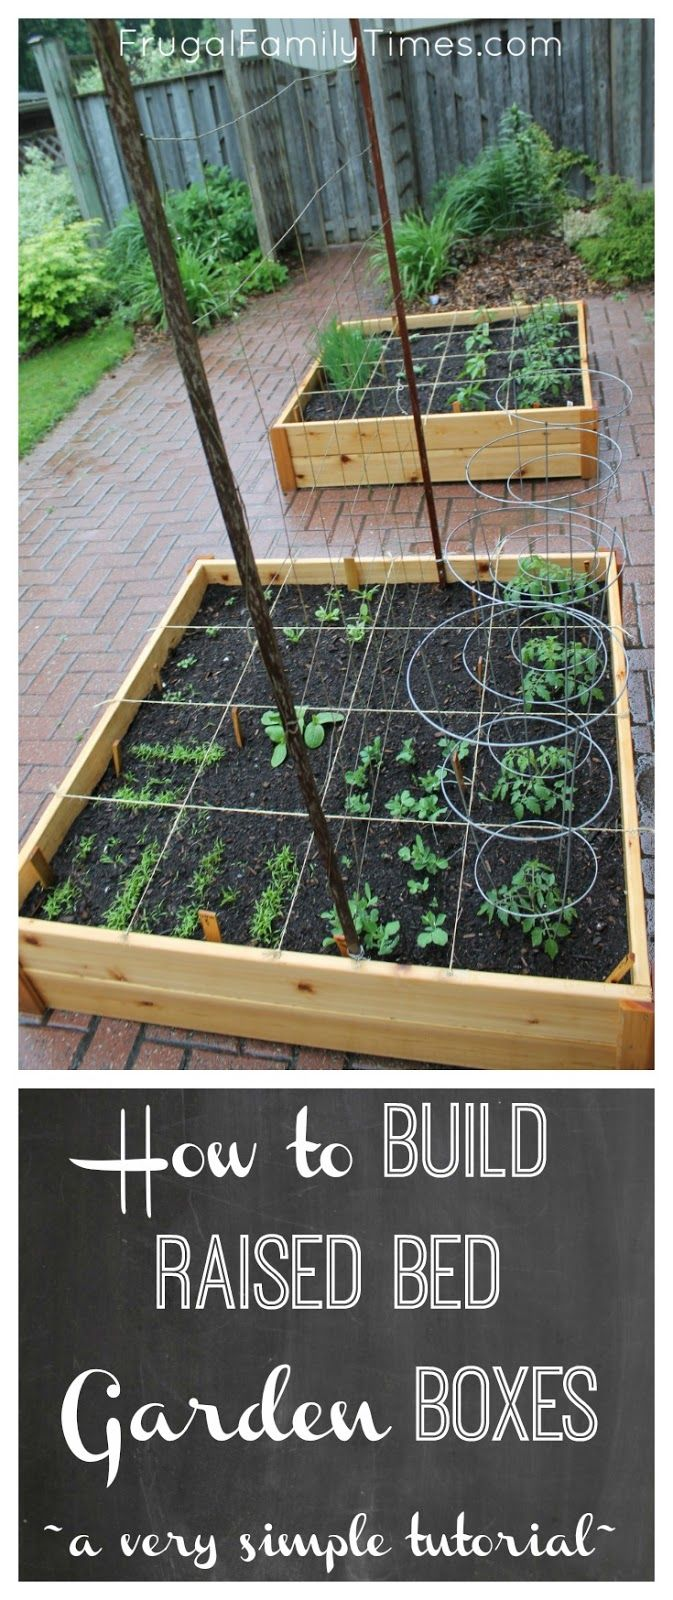 Questions about the recycled plastic raised garden bed 3 x 6 x 11 quot - How To Build Simple Raised Garden Beds A Cheap And Easy Diy Ideas